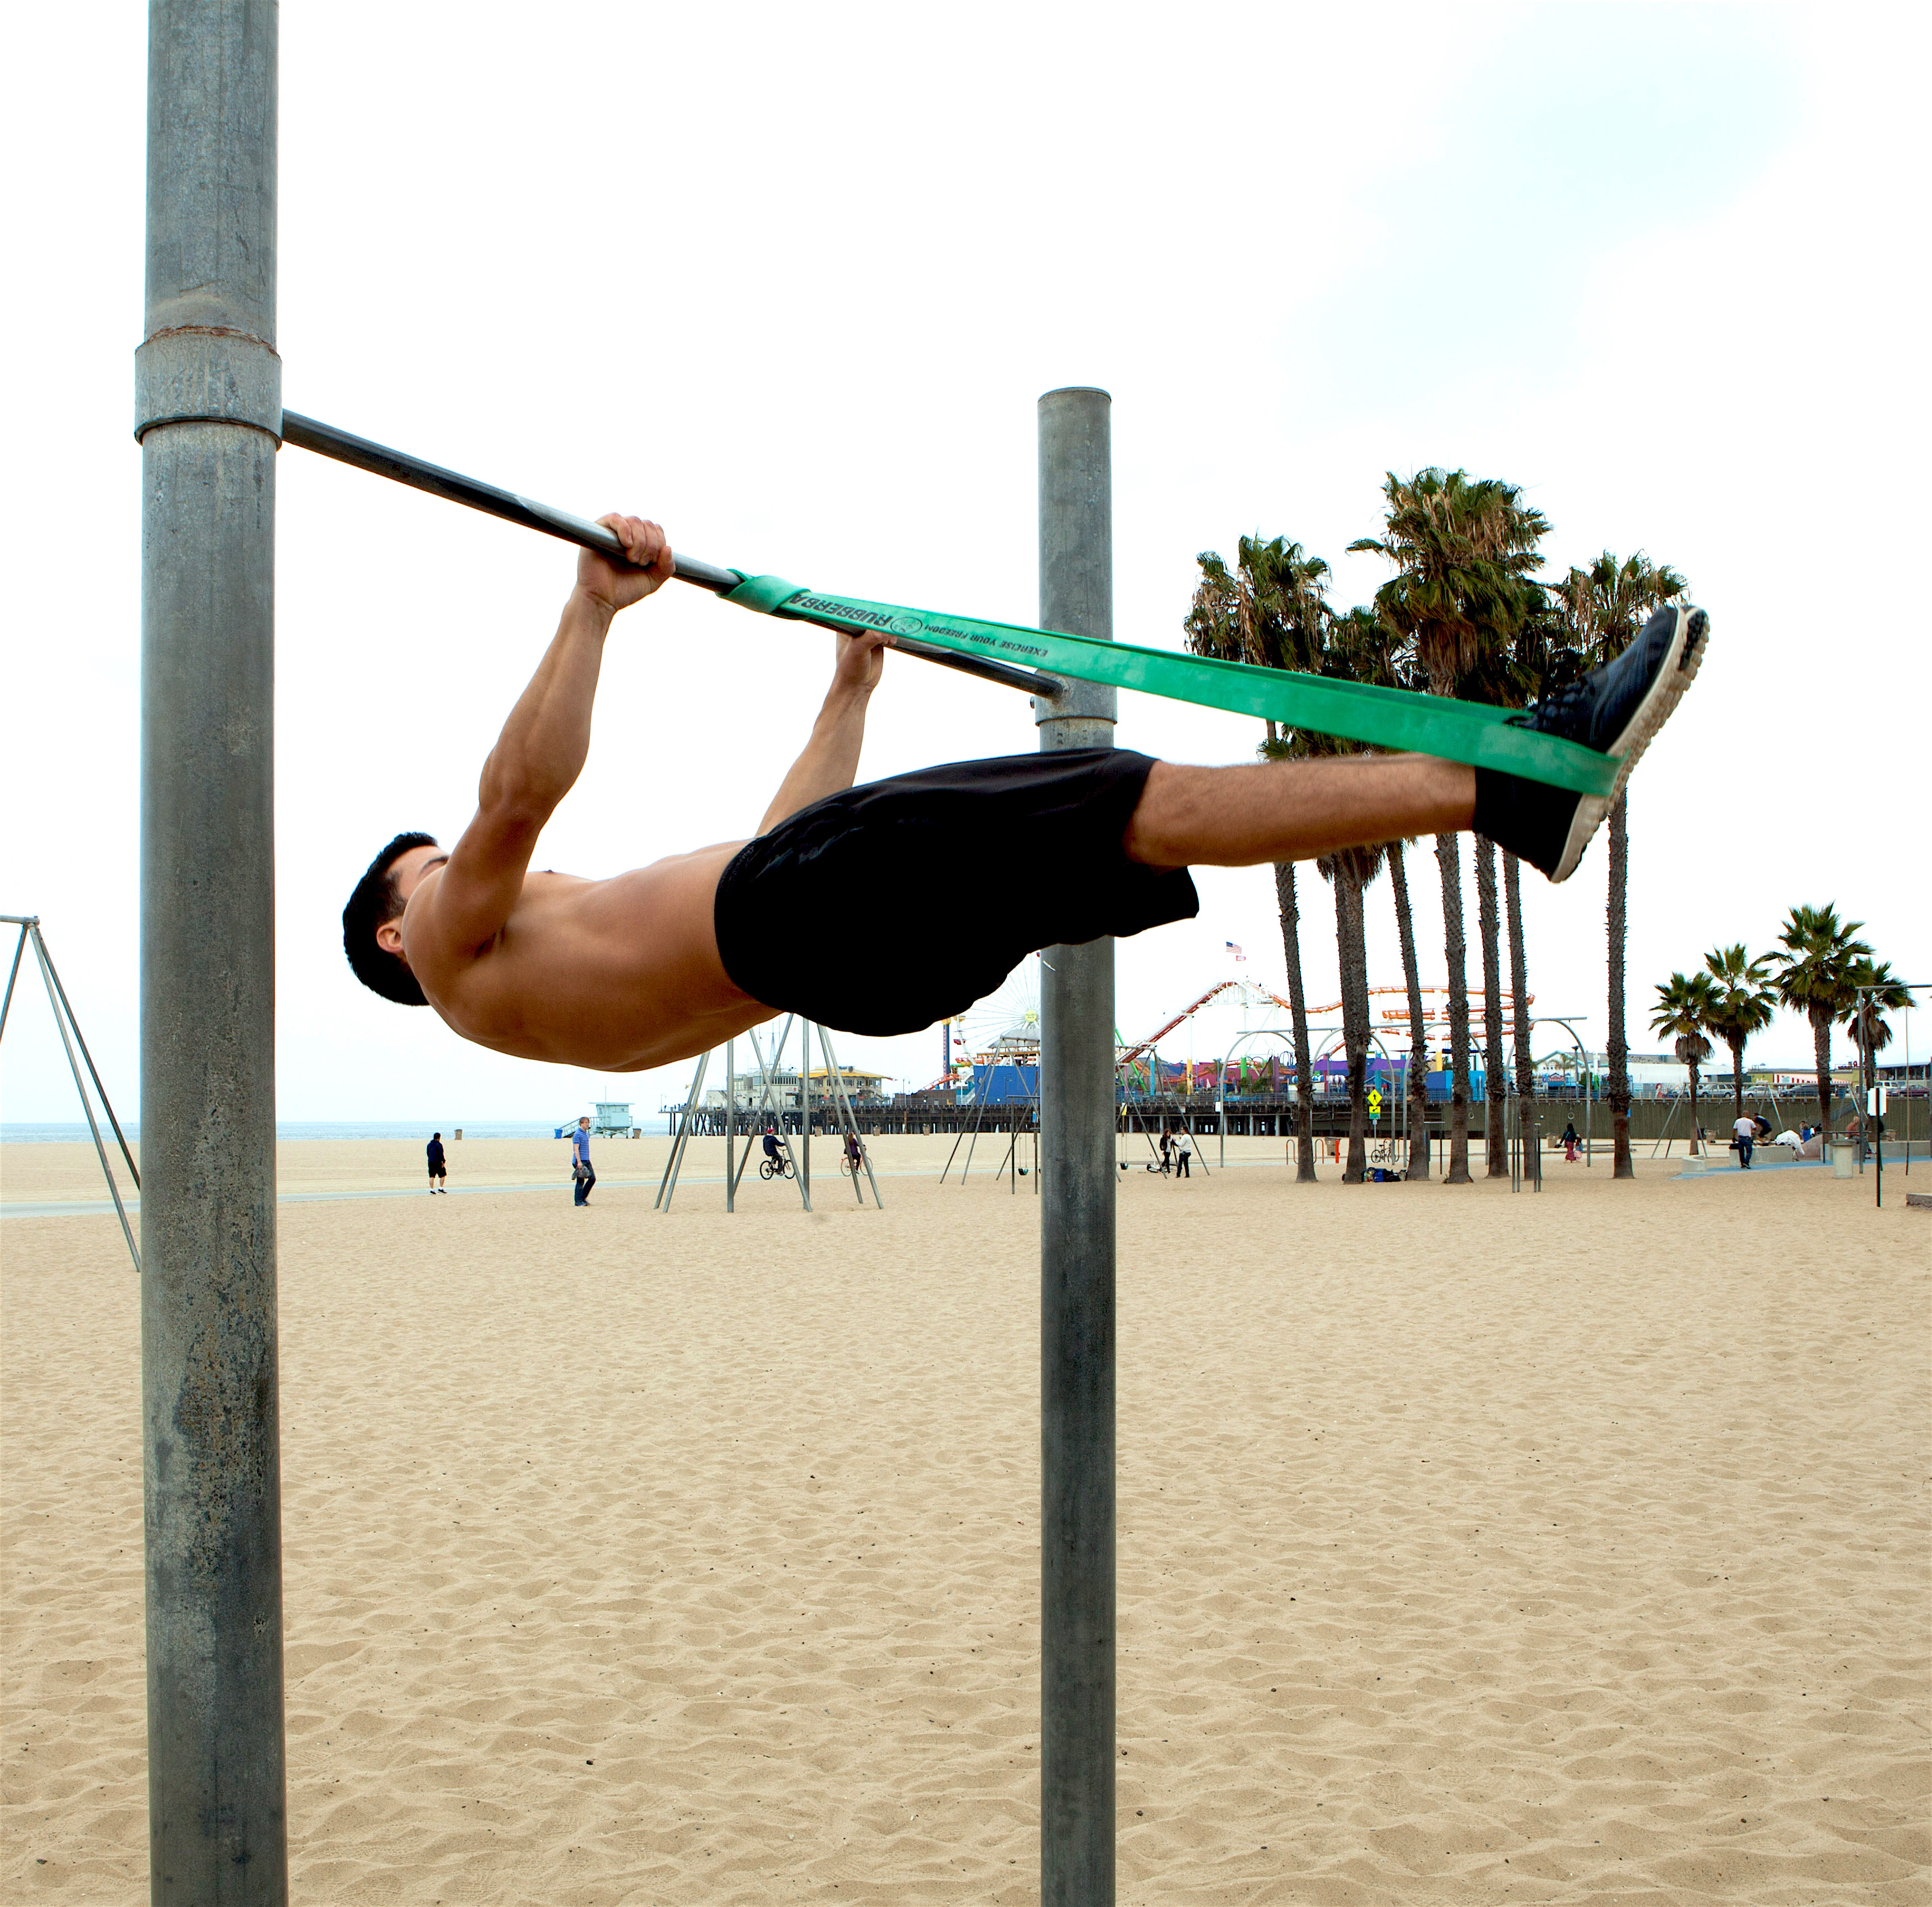 Full Front Lever Progression with RubberBanditz Resistance Bands